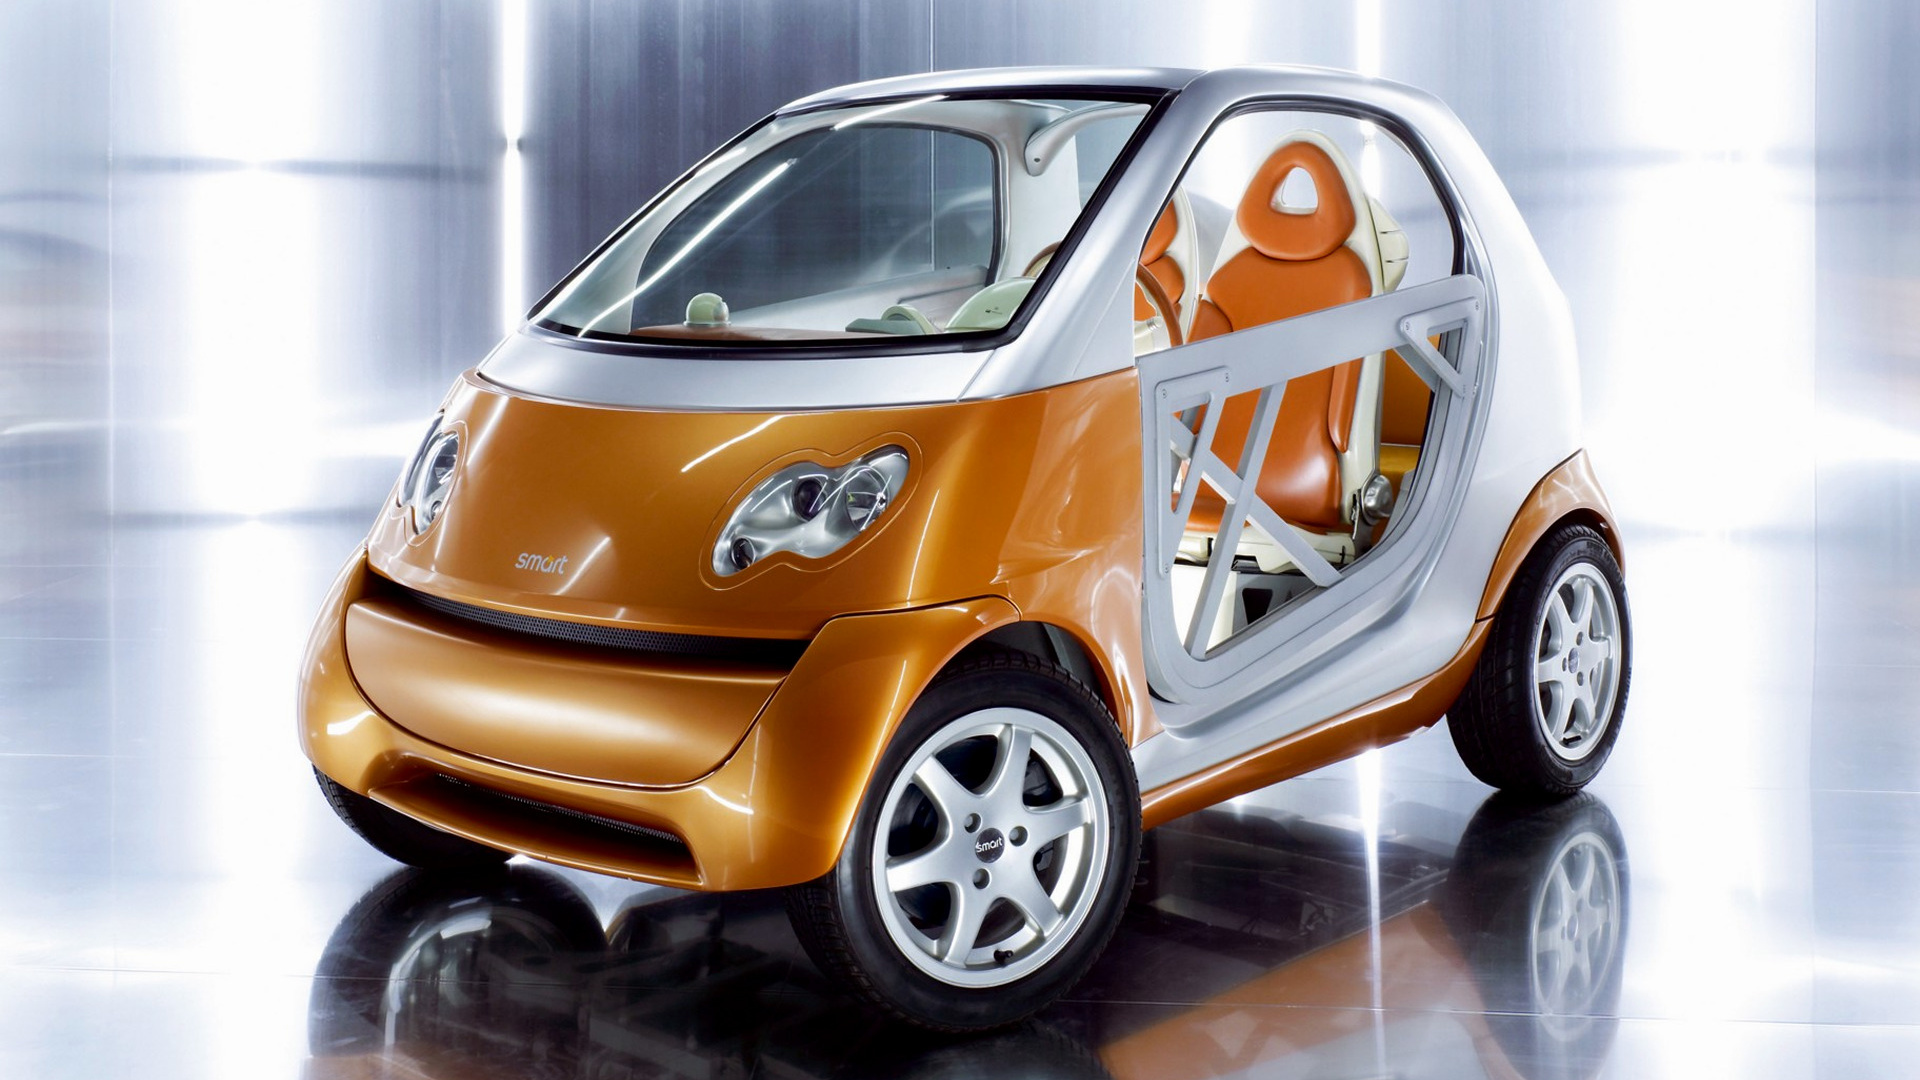 Lotus Car Hd Wallpapers Smart Paris Concept 1996 Wallpapers And Hd Images Car